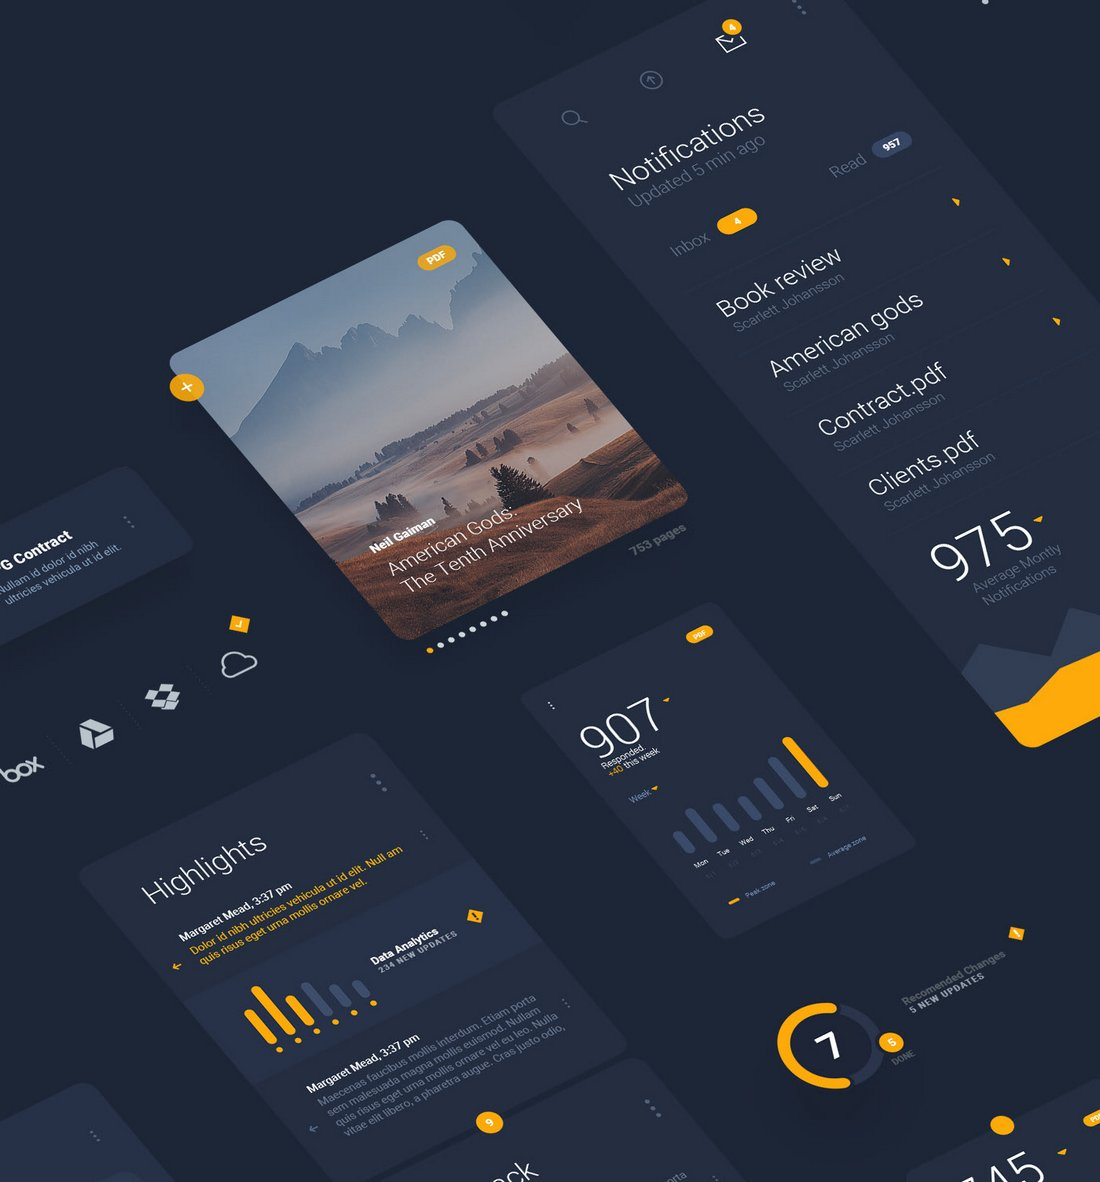 LiquidPro - Free Sketch UI Kit